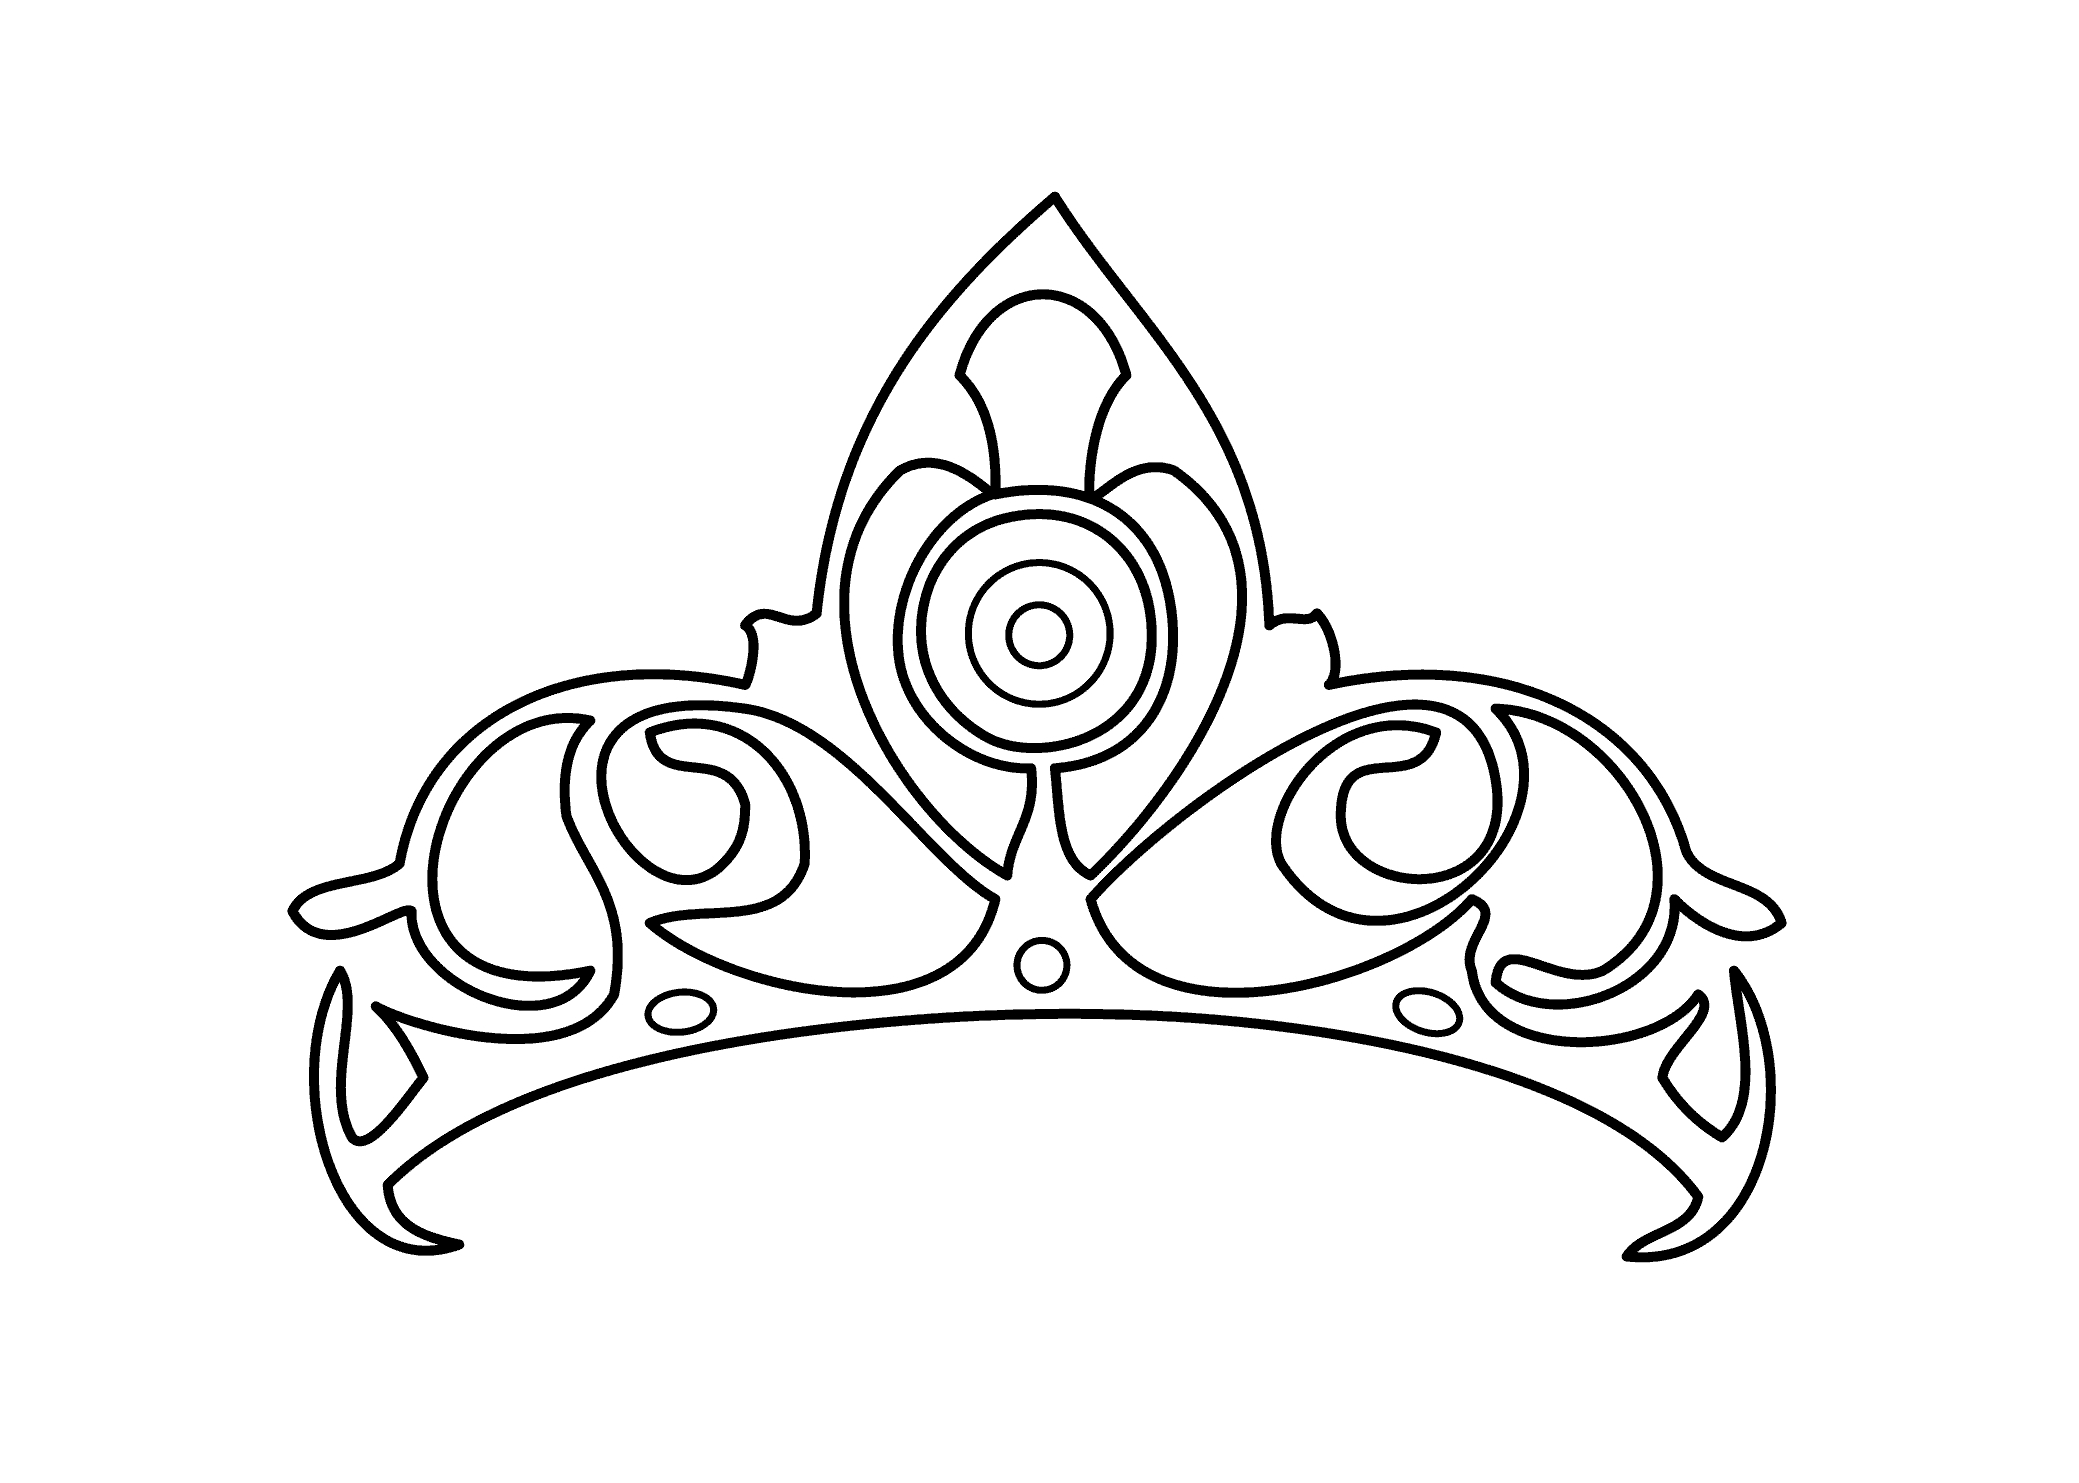 Princess Crown Drawing at GetDrawings.com | Free for personal use ...